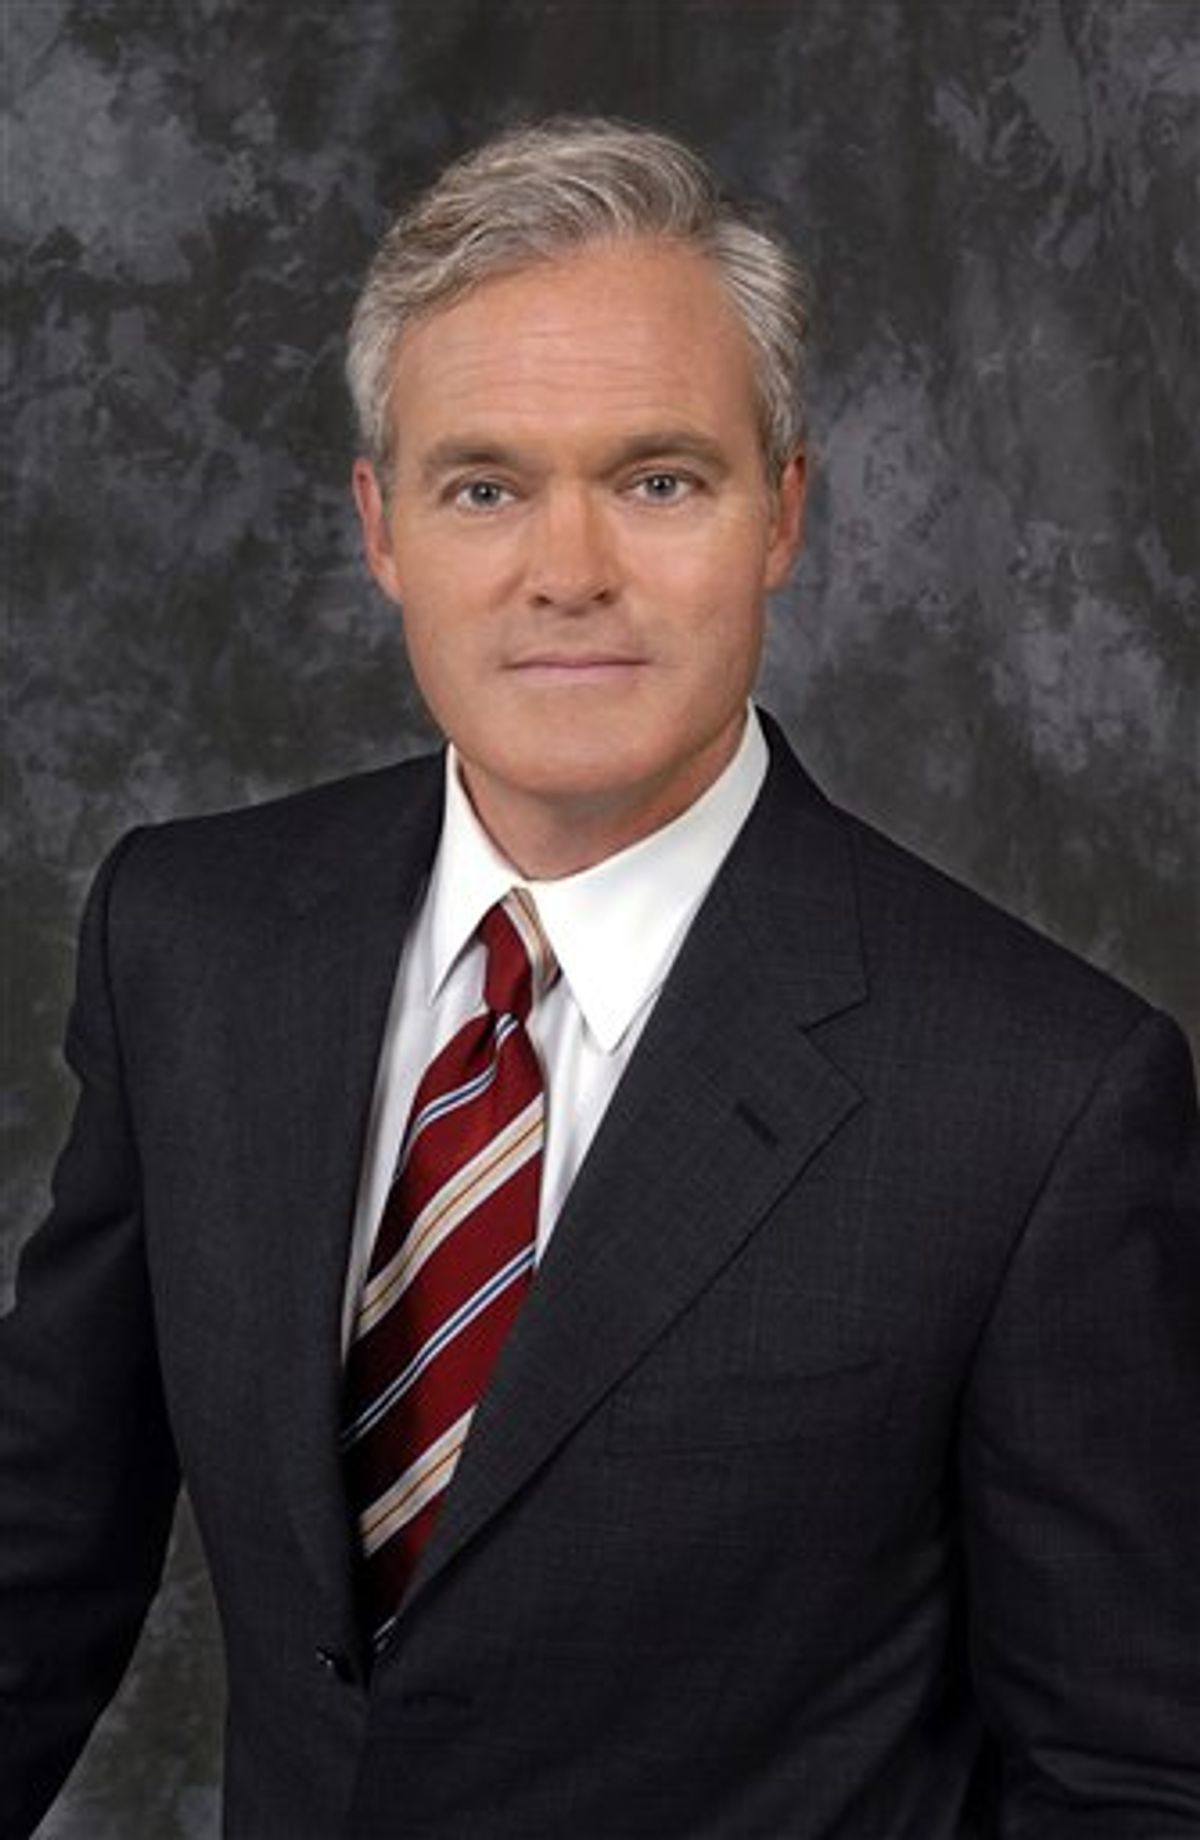 """In this 2005 photo released by CBS, """"60 Minutes"""" correspondent Scott Pelley, is shown. (AP Photo/CBS, John Filo) MANDATORY CREDIT; NO ARCHIVE; NO SALES; FOR NORTH AMERICAN USE ONLY. (AP)"""